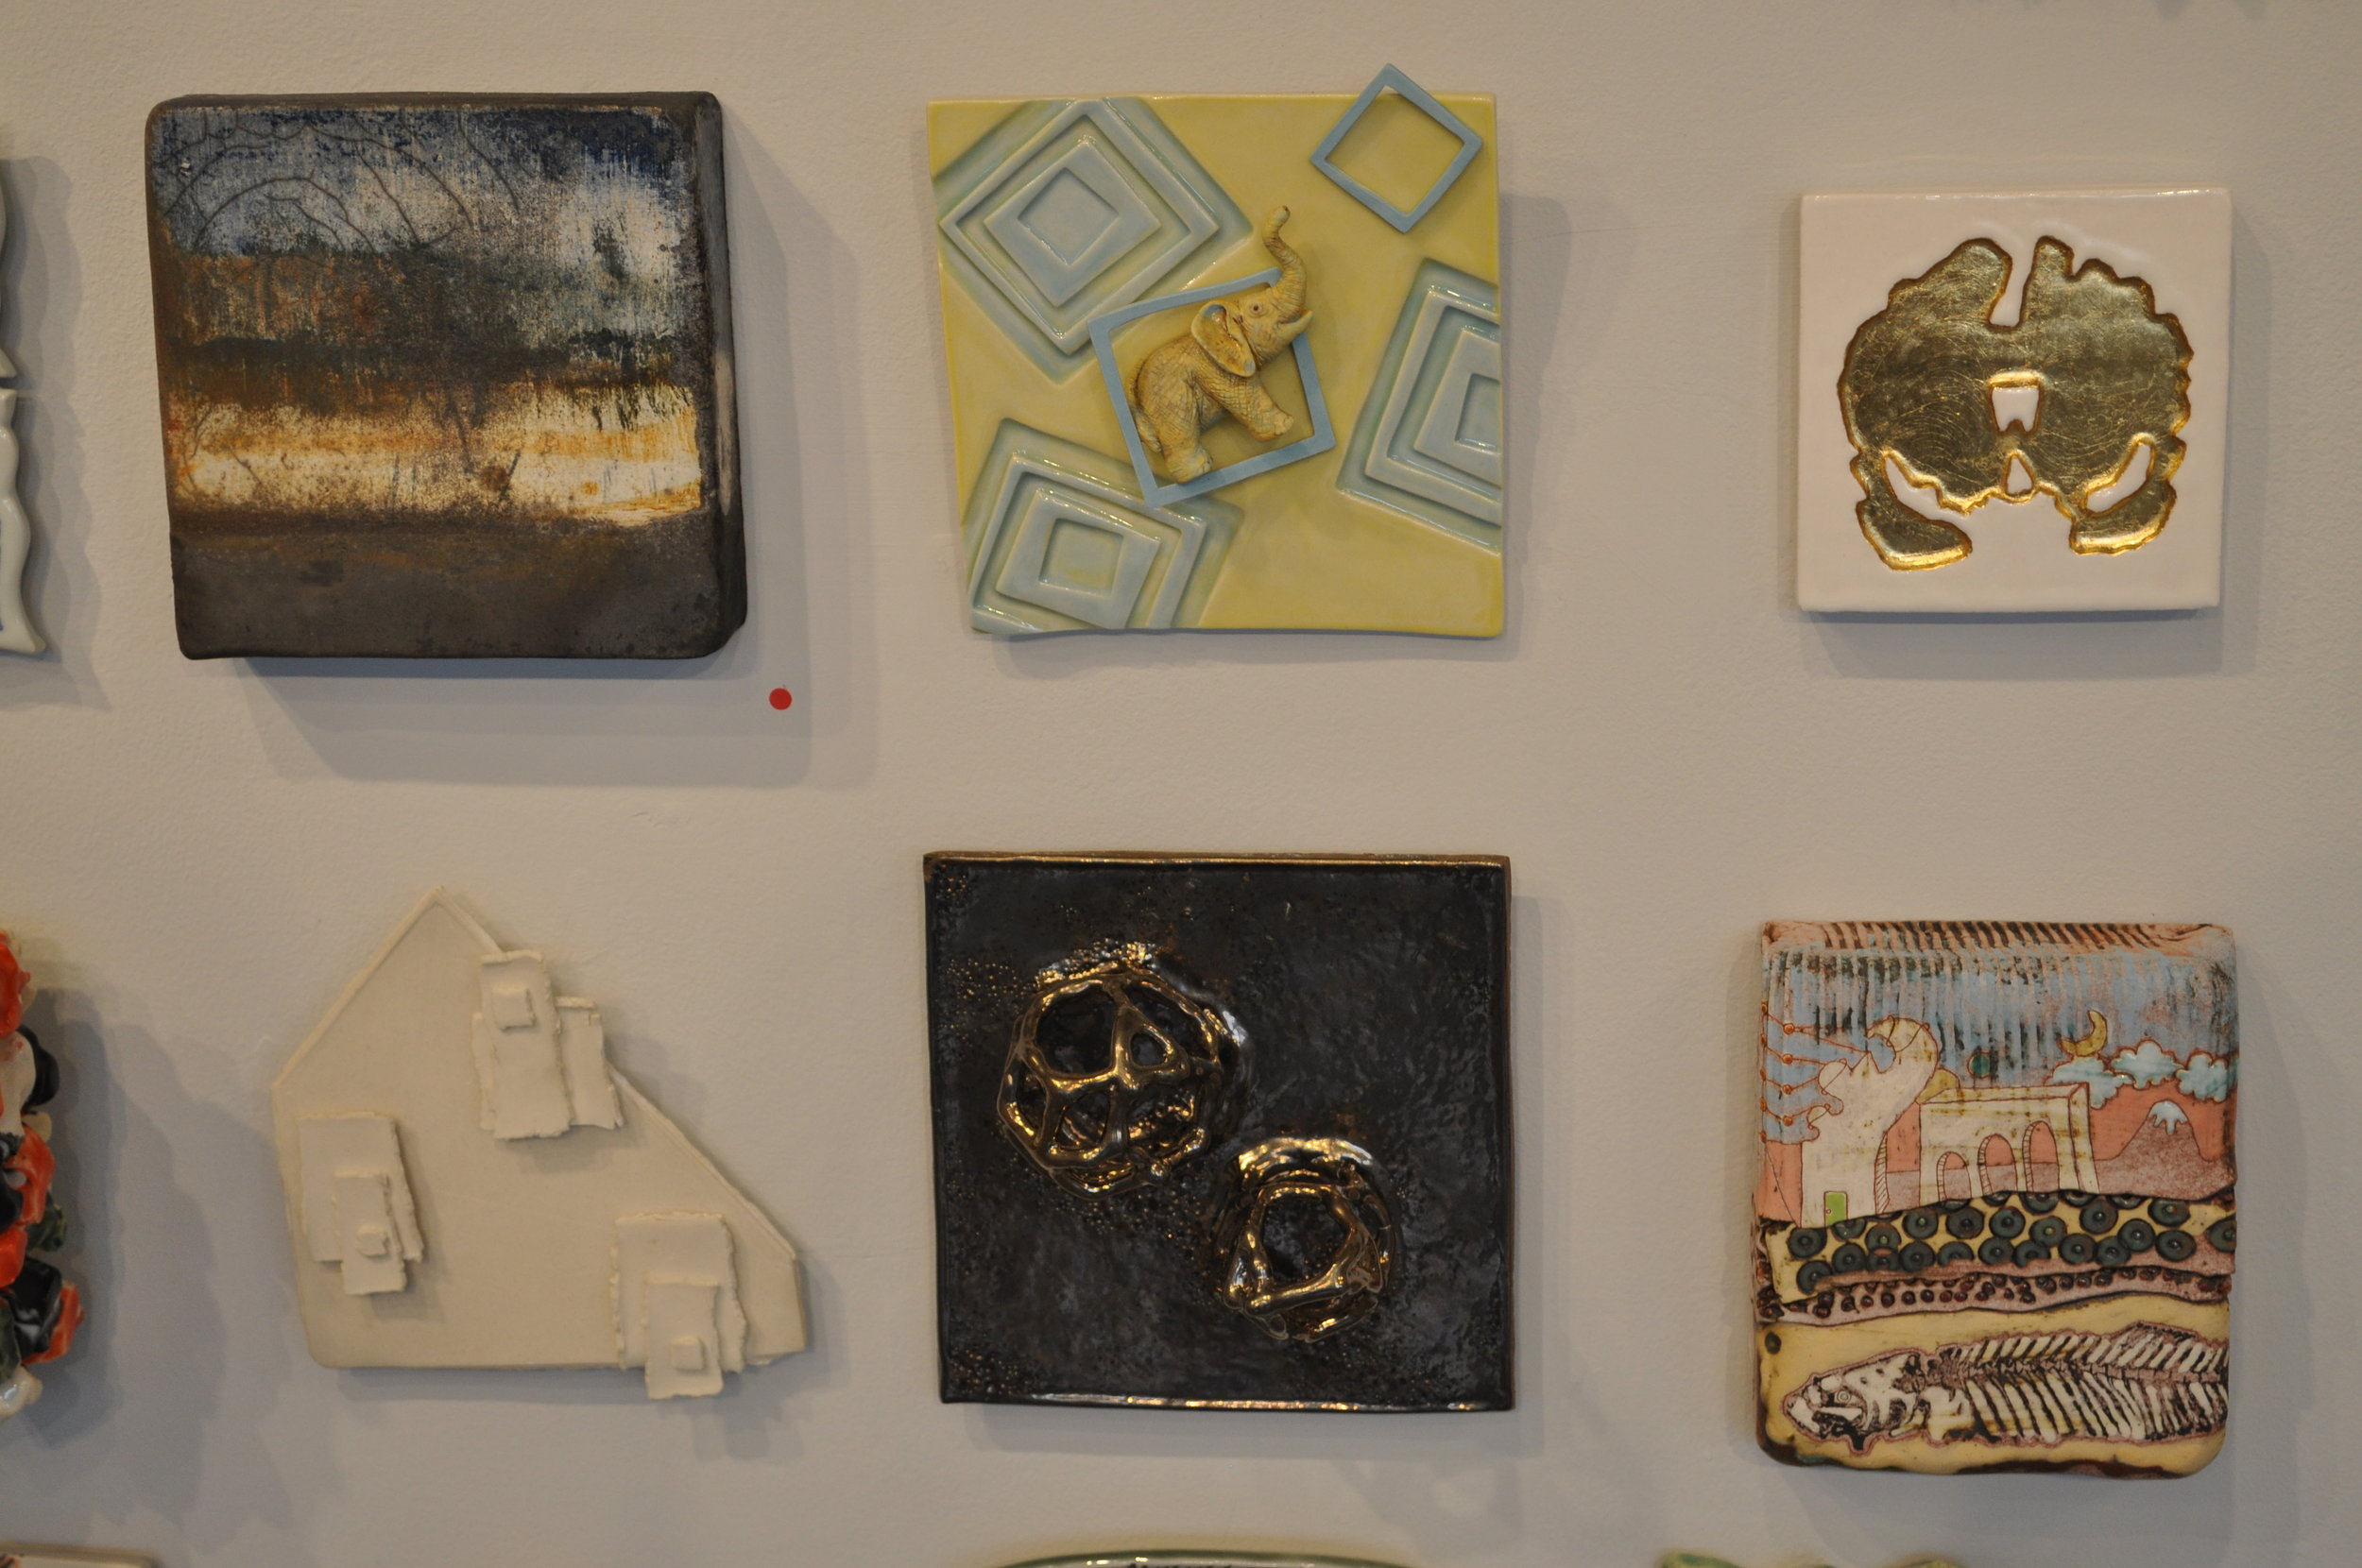 1.  Lily Schor,  Landscape  (SOLD) 2.  Sally Ng,  Blue Squares  $65   3 . Bri Murphy,  Coronal Slice Geode Tile (White-Edition 1 of 3) $200  4. Deborah Mawhinney,  Under One Roof  $90  5.  Jackie Welsh,  Untitled 3  (SOLD) 6.  Shanna Fliegel,  A Subterranean Perspective $250